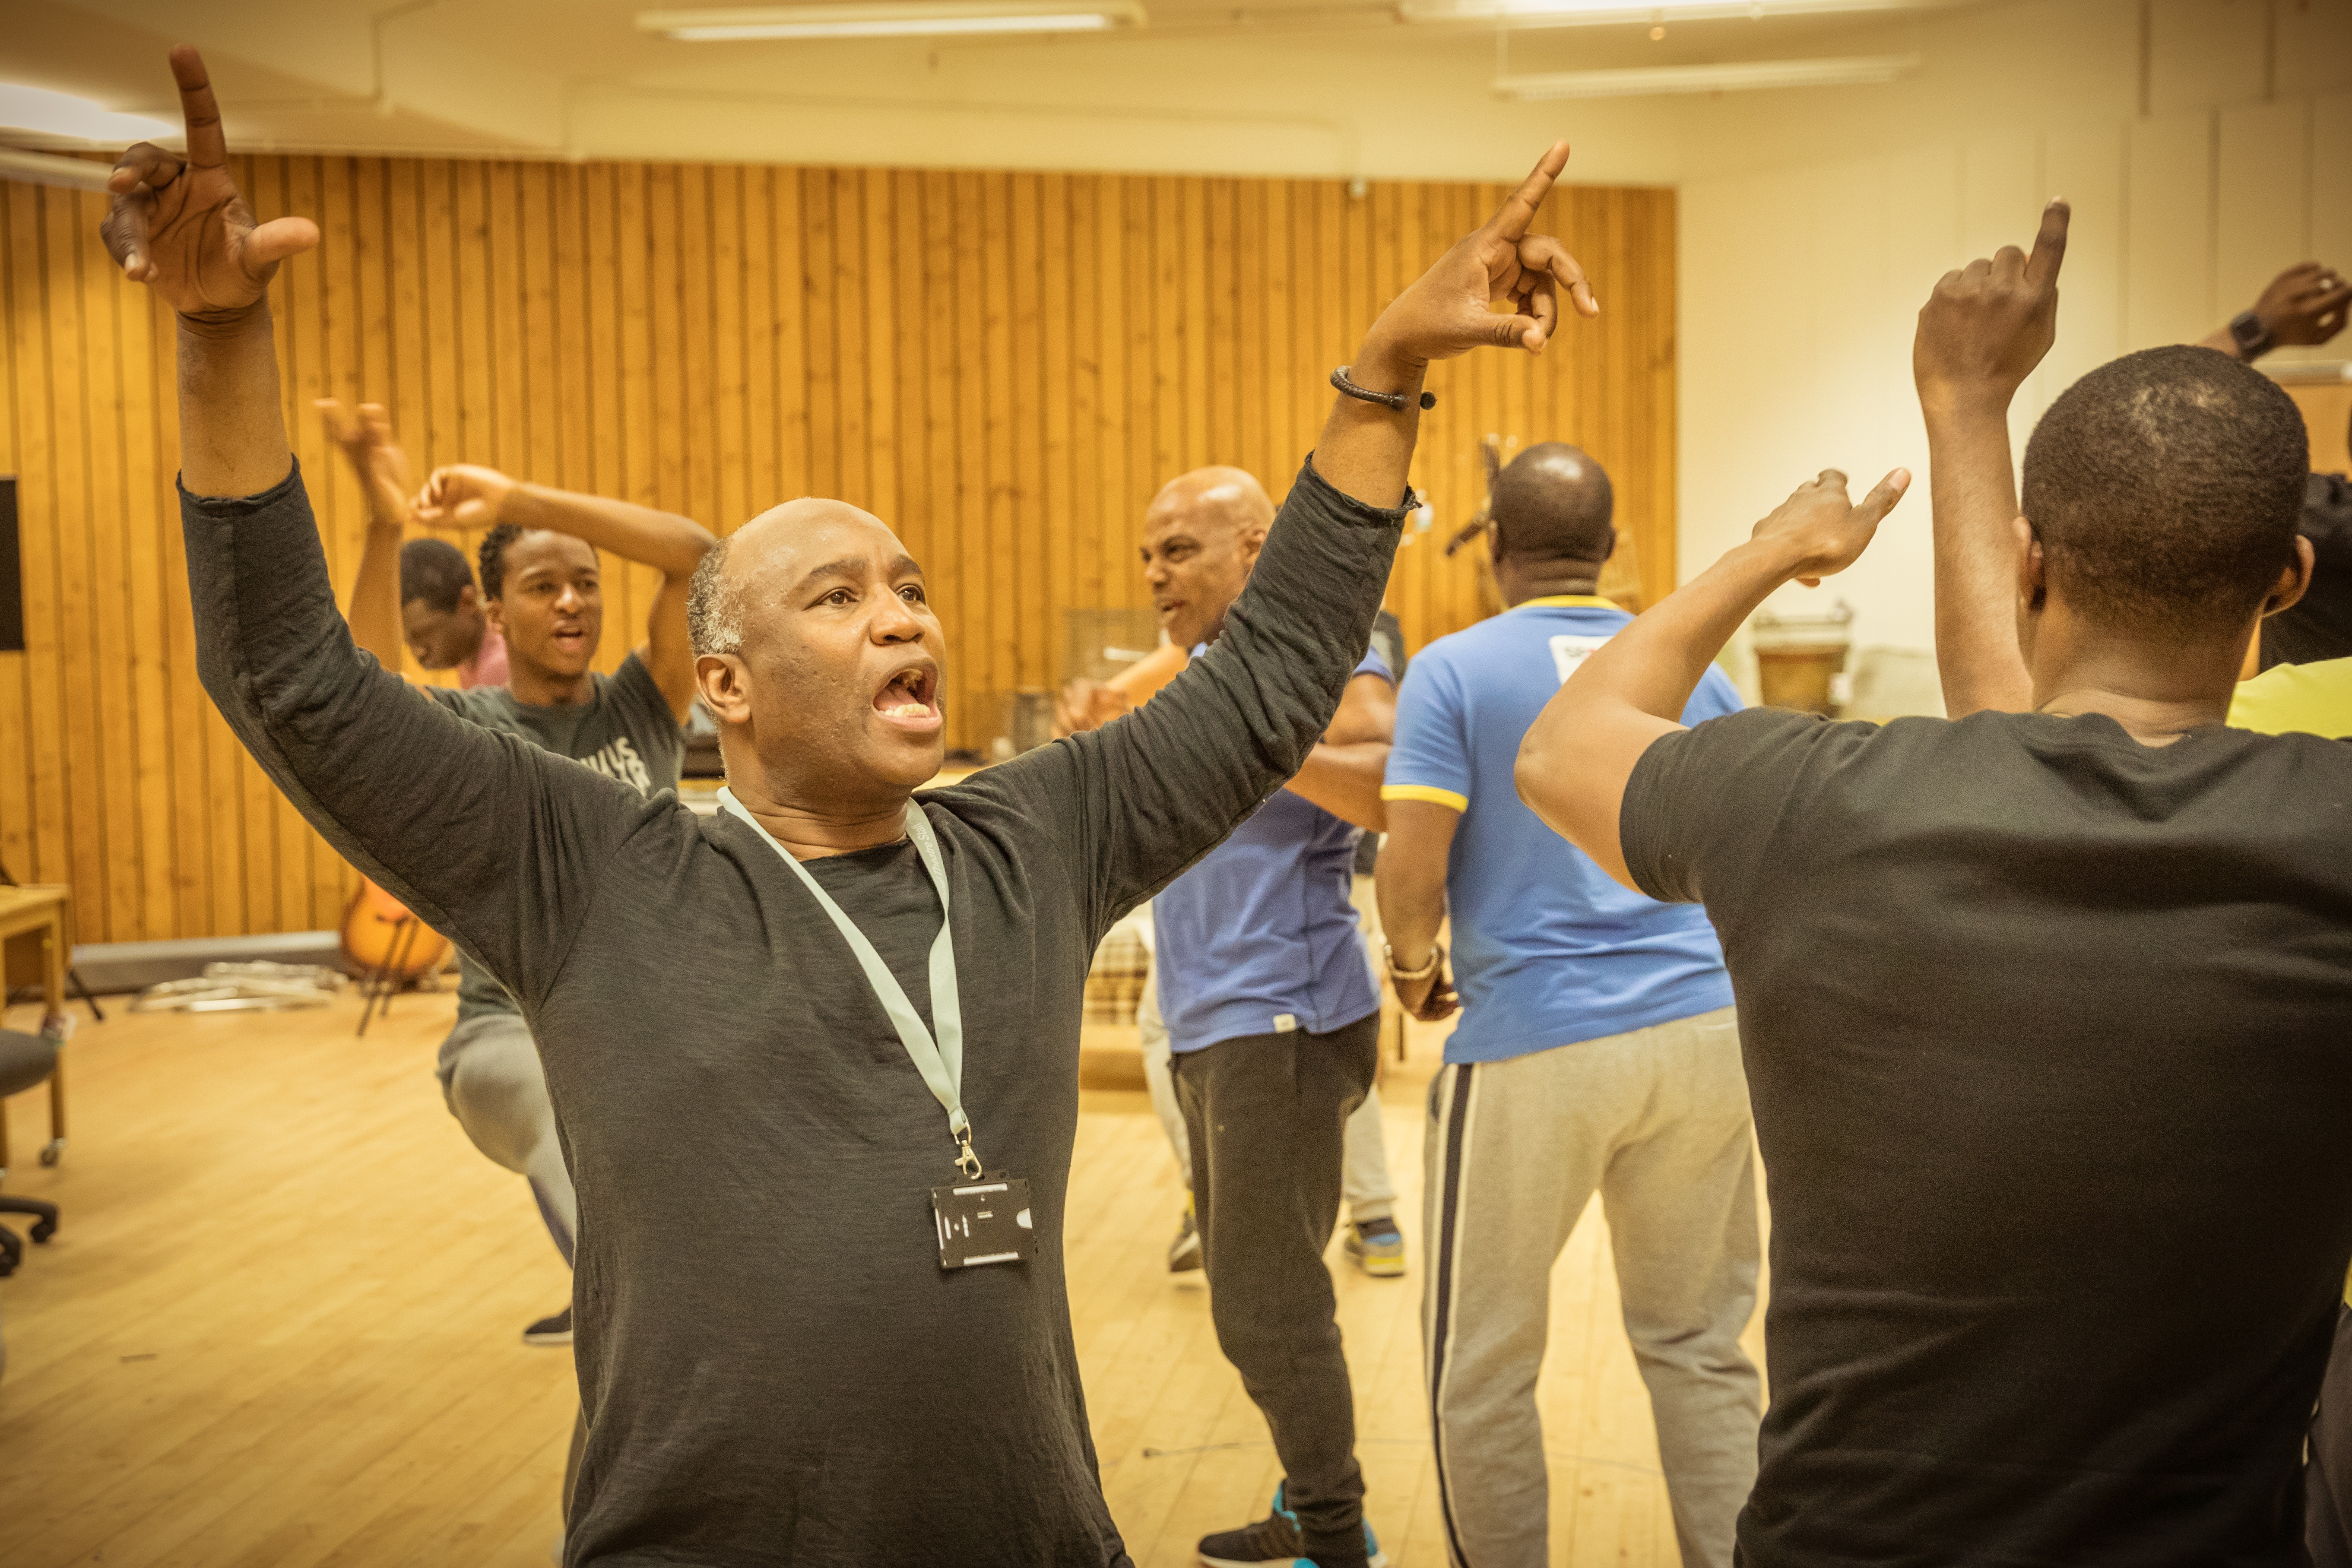 Barber Shop Chronicles in rehearsal: vibrant production travels to Leeds following a sell-out run at the National Theatre